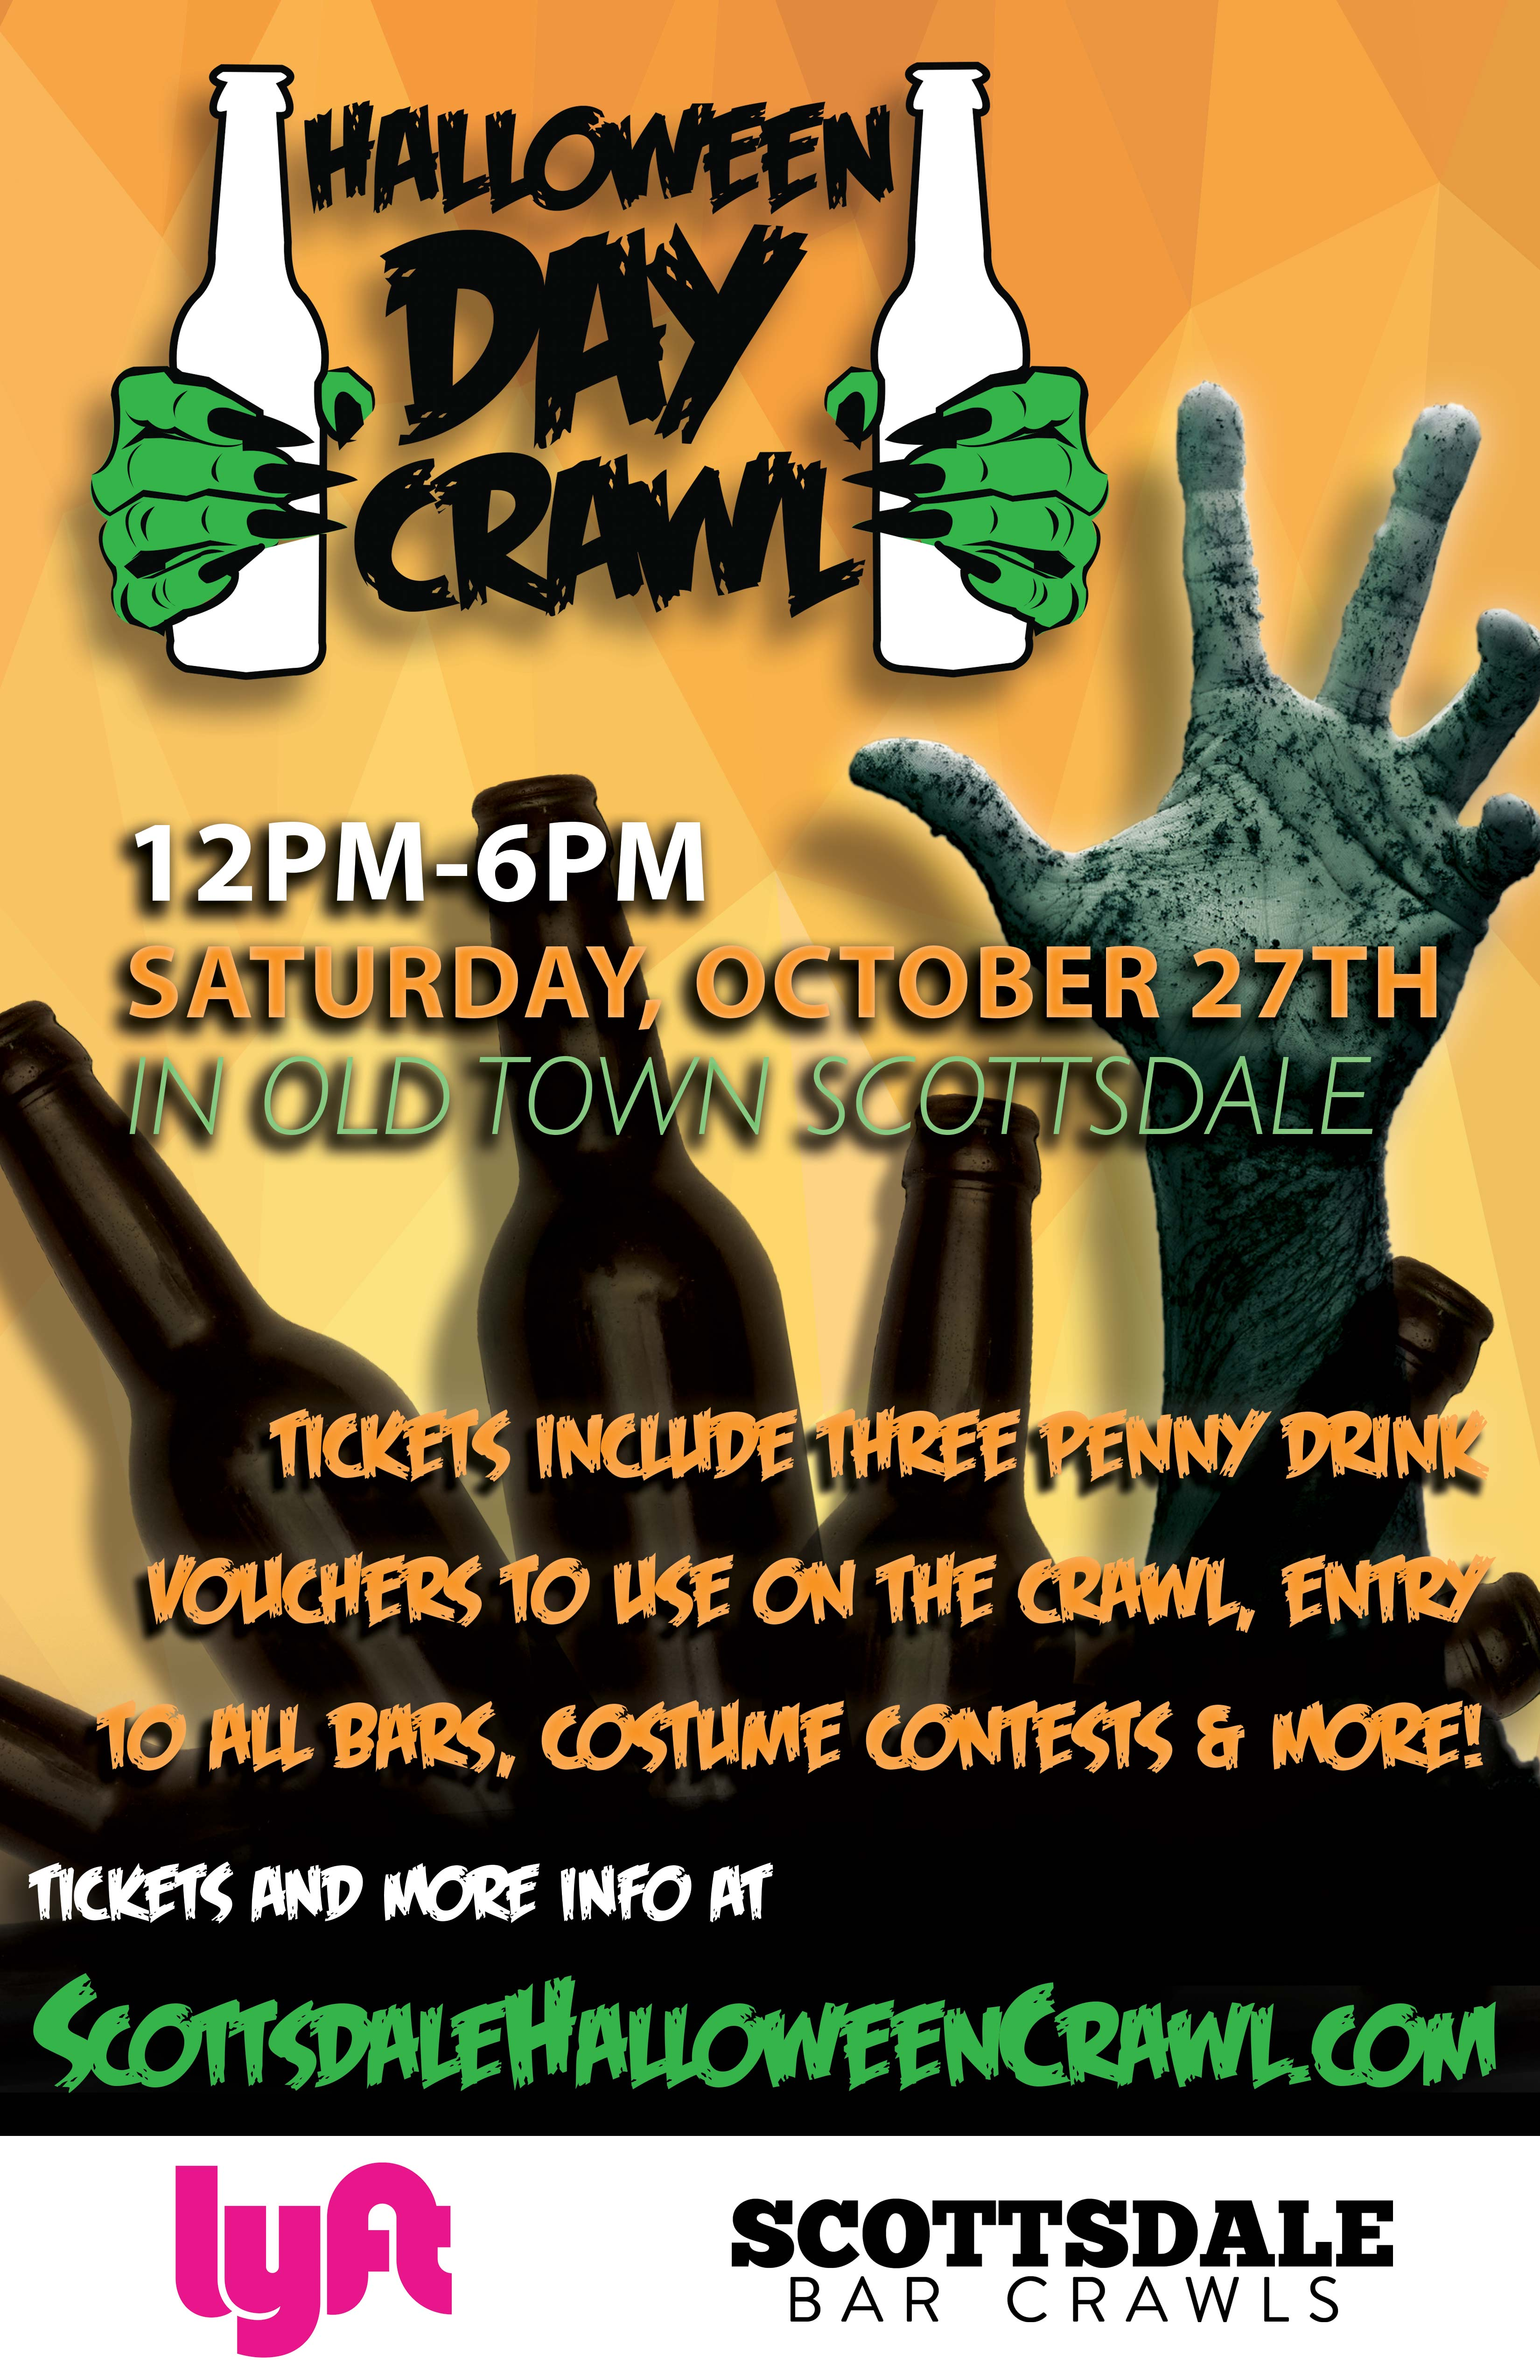 Scottsdale Halloween Day Bar Crawl Party - Tickets include 3 Penny Drink Vouchers to Use on the Crawl, Entry to All the Bars, Costume Contests & More!